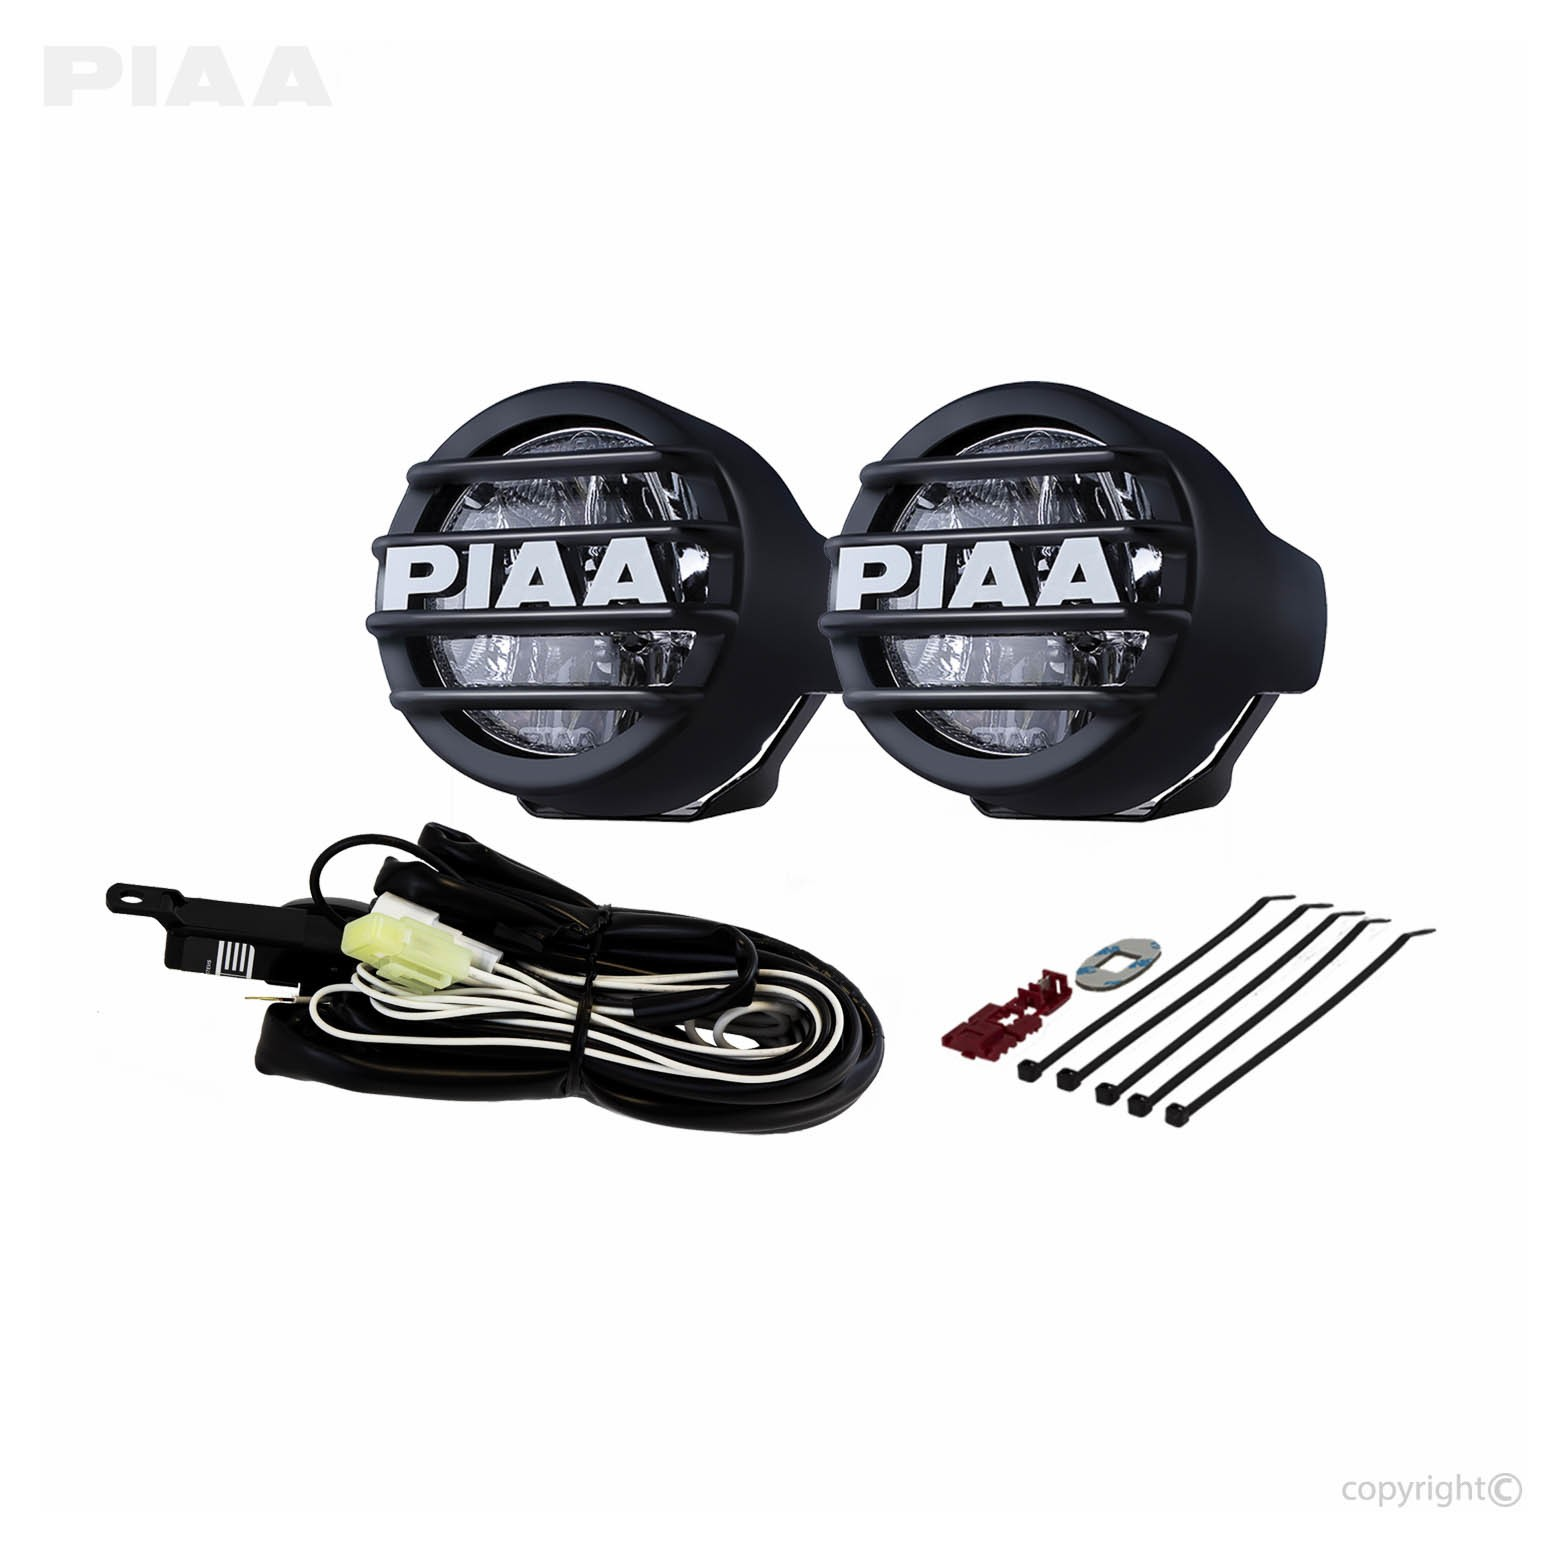 Piaa 540 Wiring Diagram Electrical Diagrams Hiniker Wire Harness Install Motorcycle Lights Diy U2022